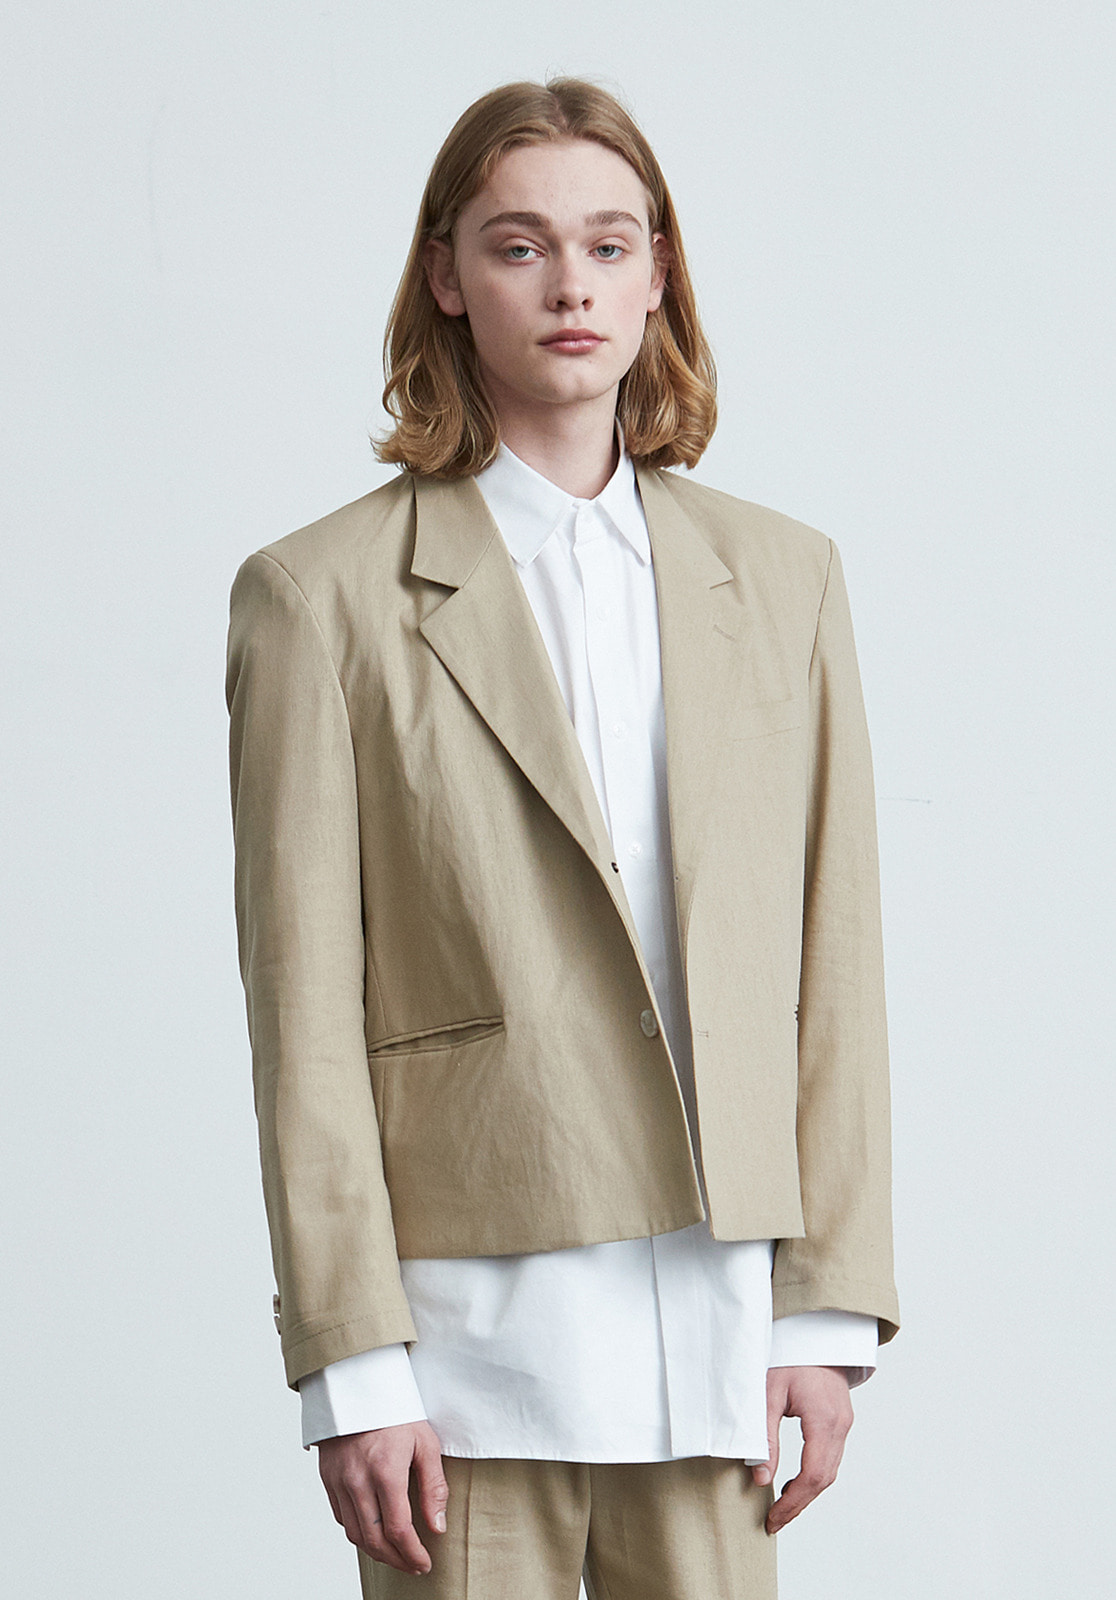 V023 LINEN CROP JACKET  BEIGE